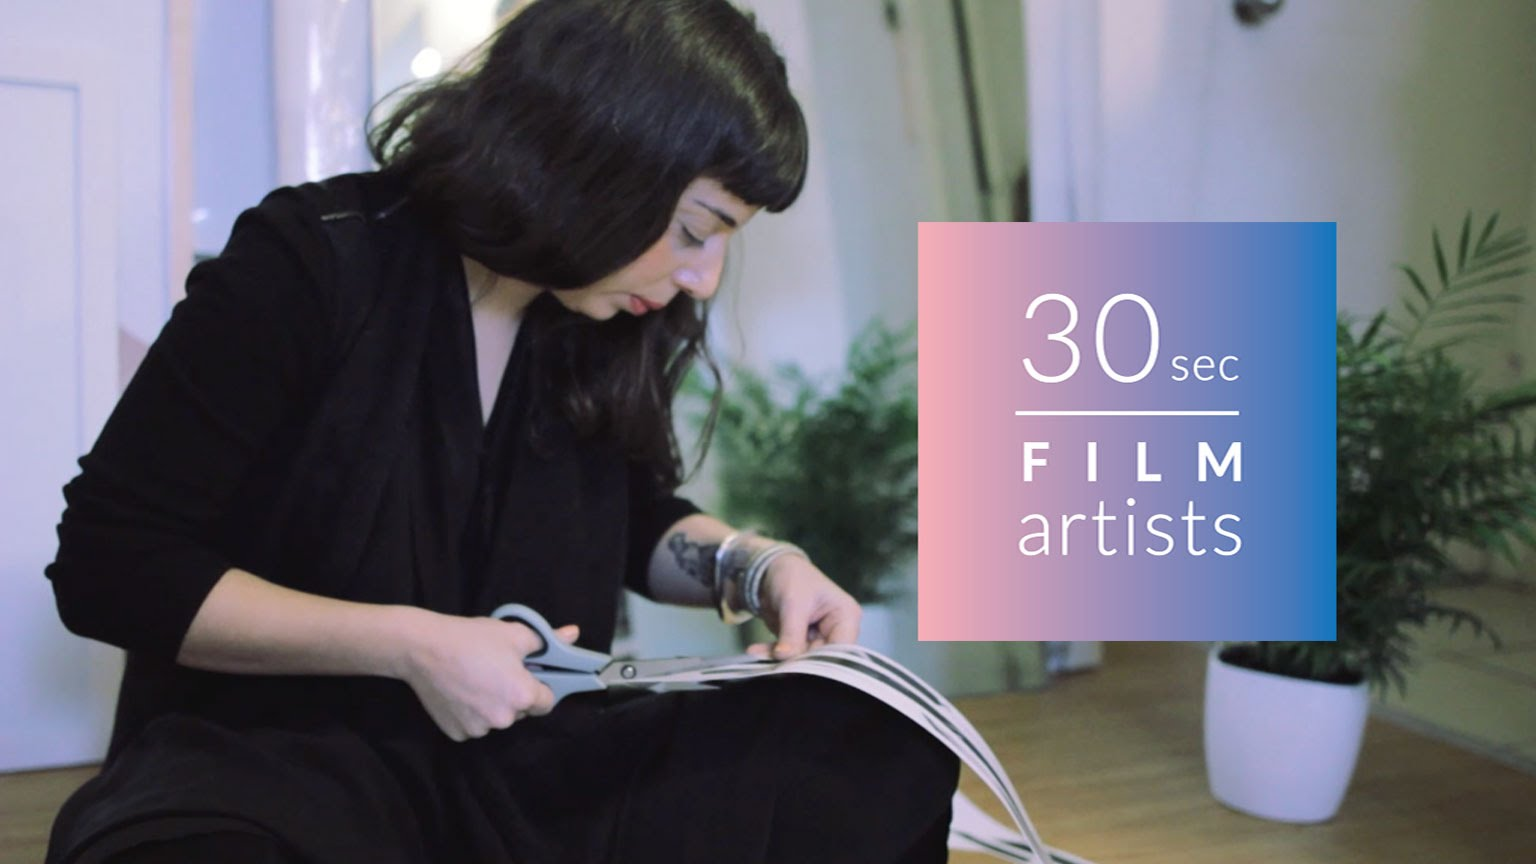 30sec film artists Vol.20 – Julia Campisi